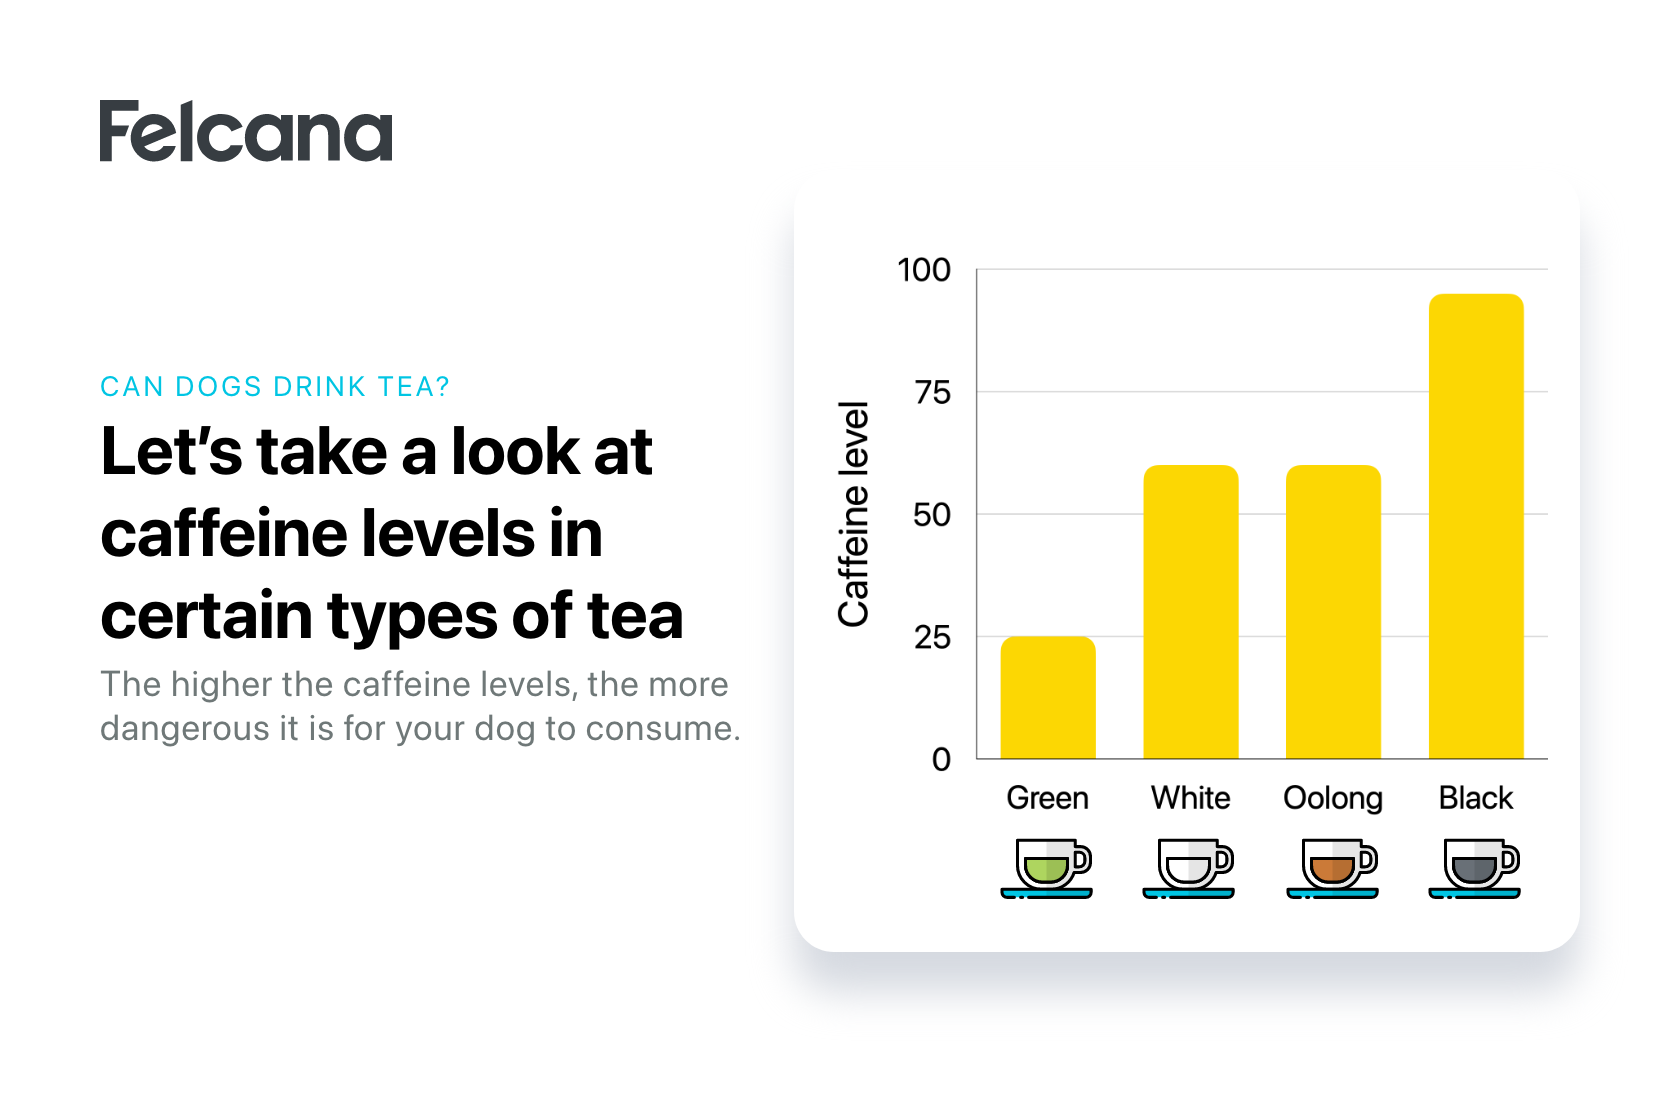 Bar chart showing different caffeine levels in green, white, oolong and black tea